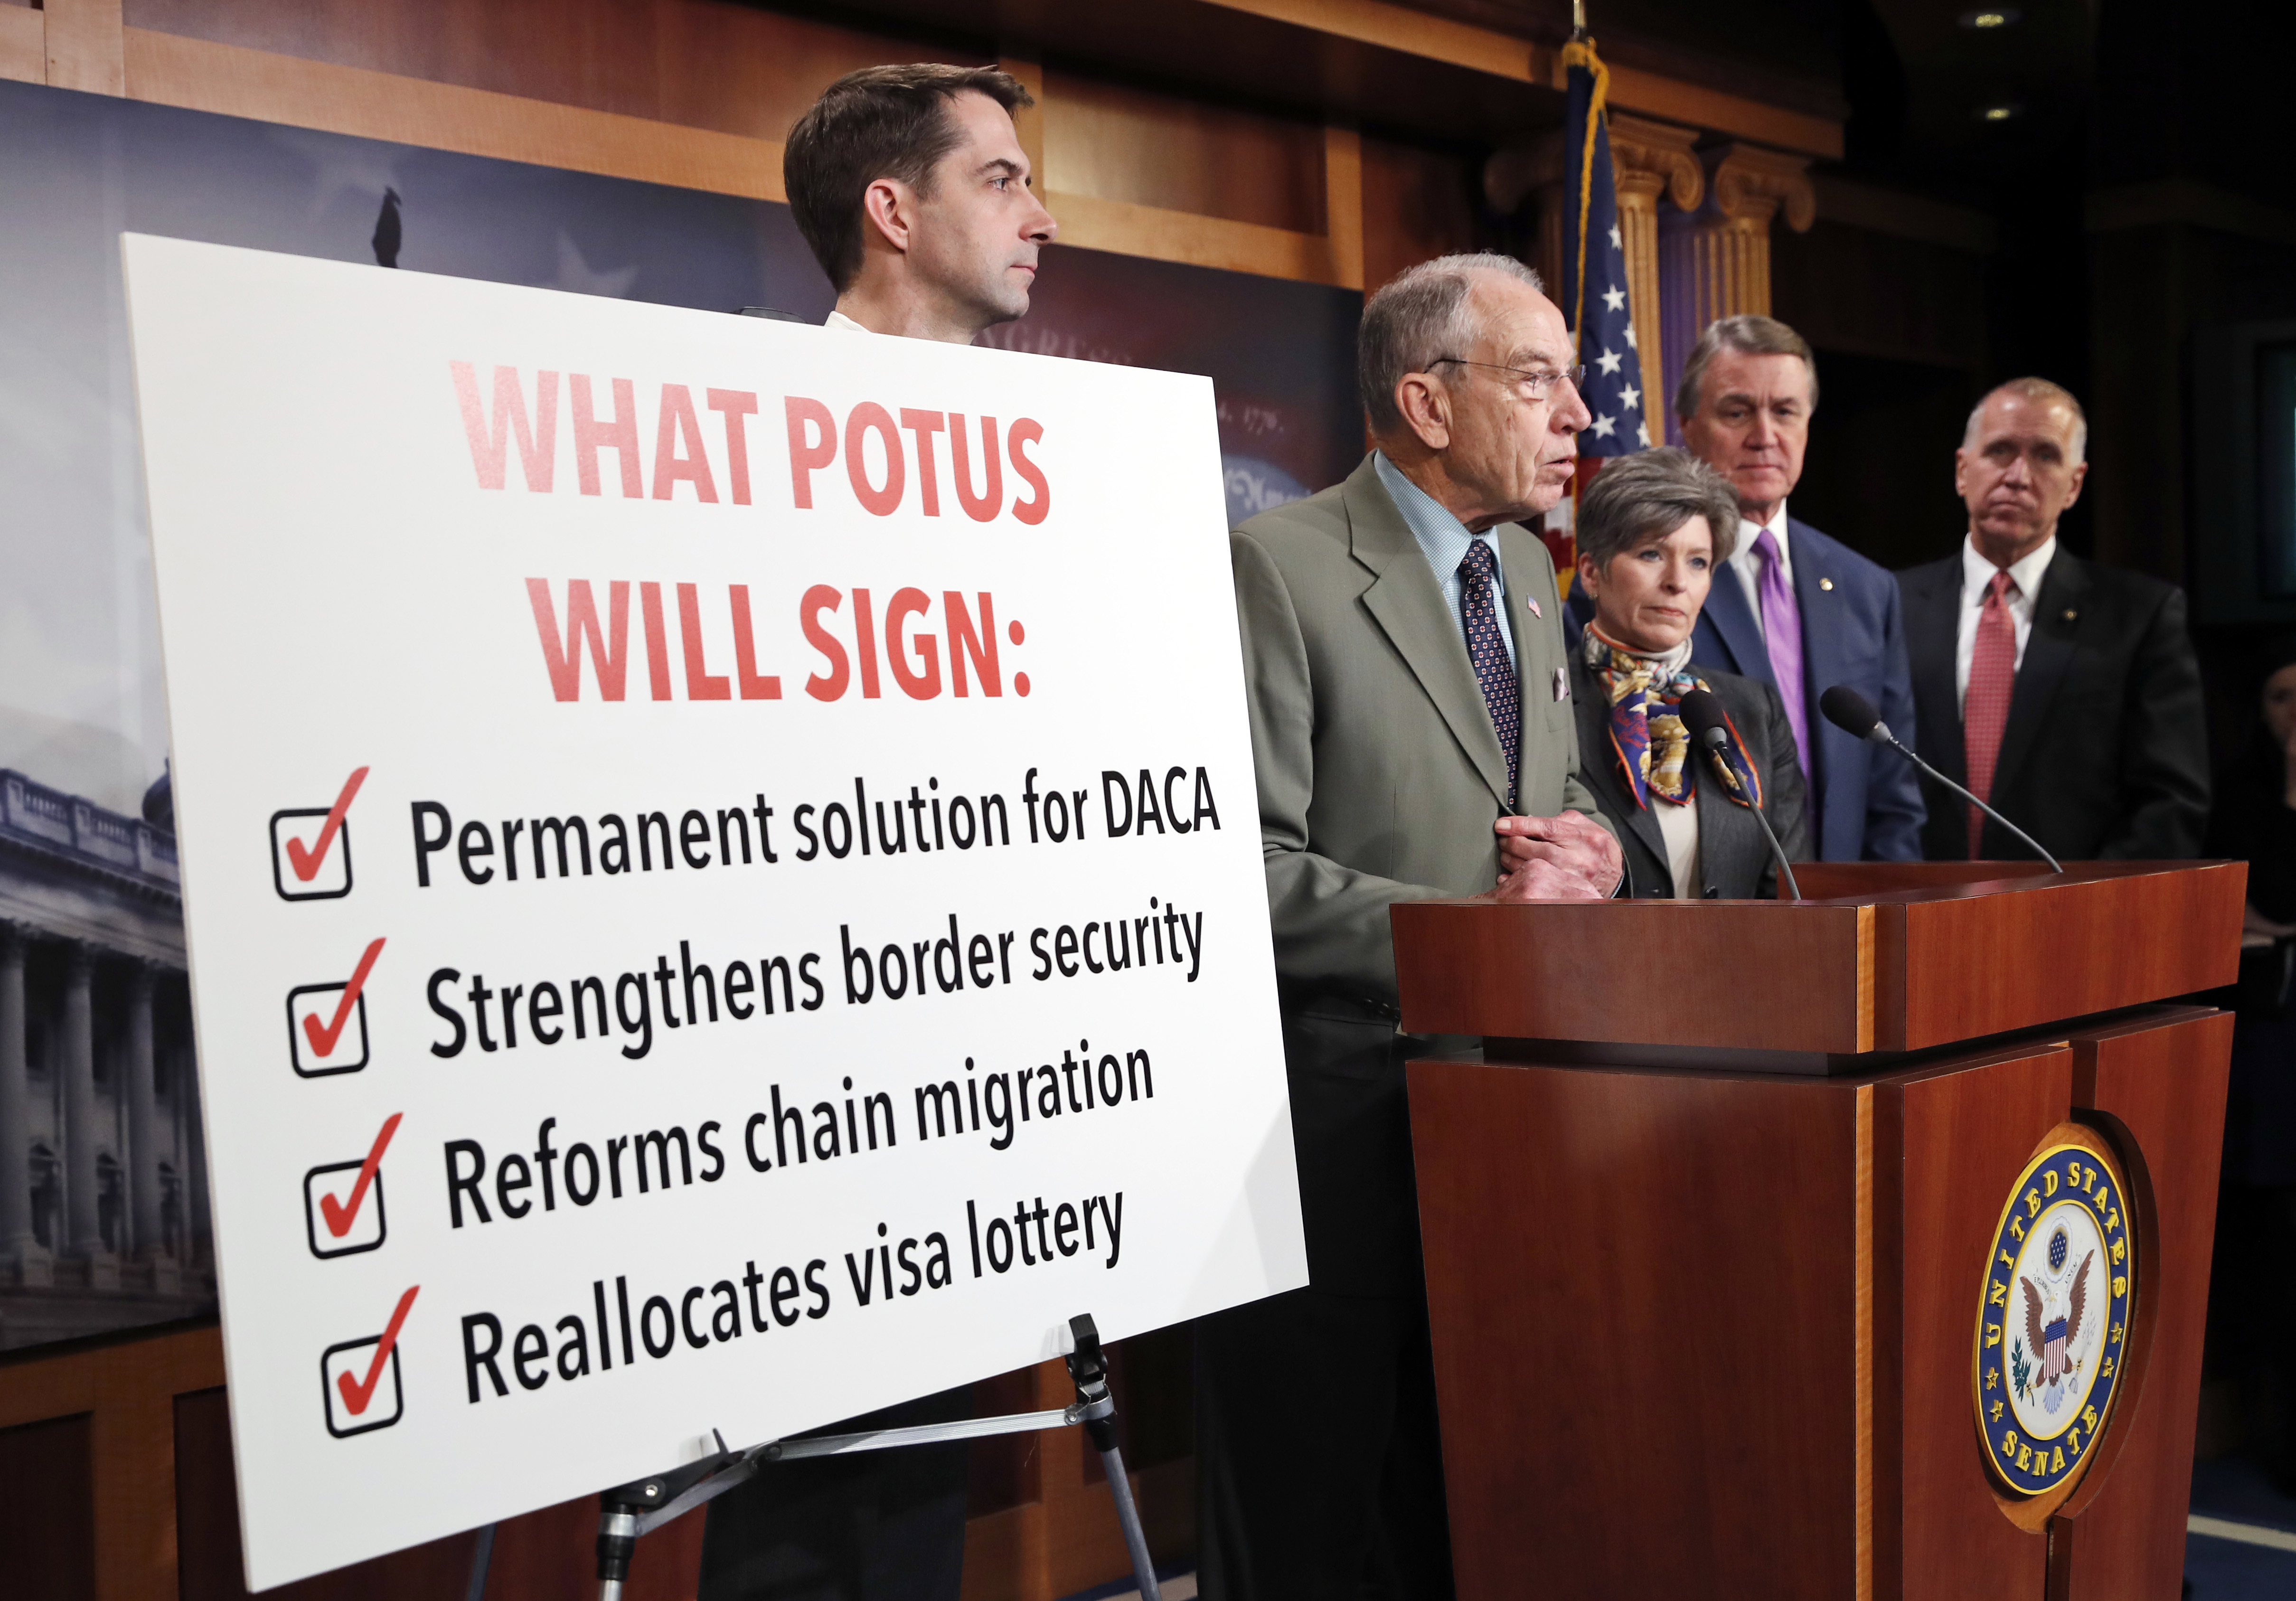 Sen. Chuck Grassley, R-Iowa, second from left, speaks accompanied by Sen. Tom Cotton, R-Ark., left, Sen. Joni Ernst, R-Iowa, Sen. David Perdue, R-Ga., and Sen. Thom Tillis, R-N.C., during a news conference about an immigration bill on Capitol Hill, F...